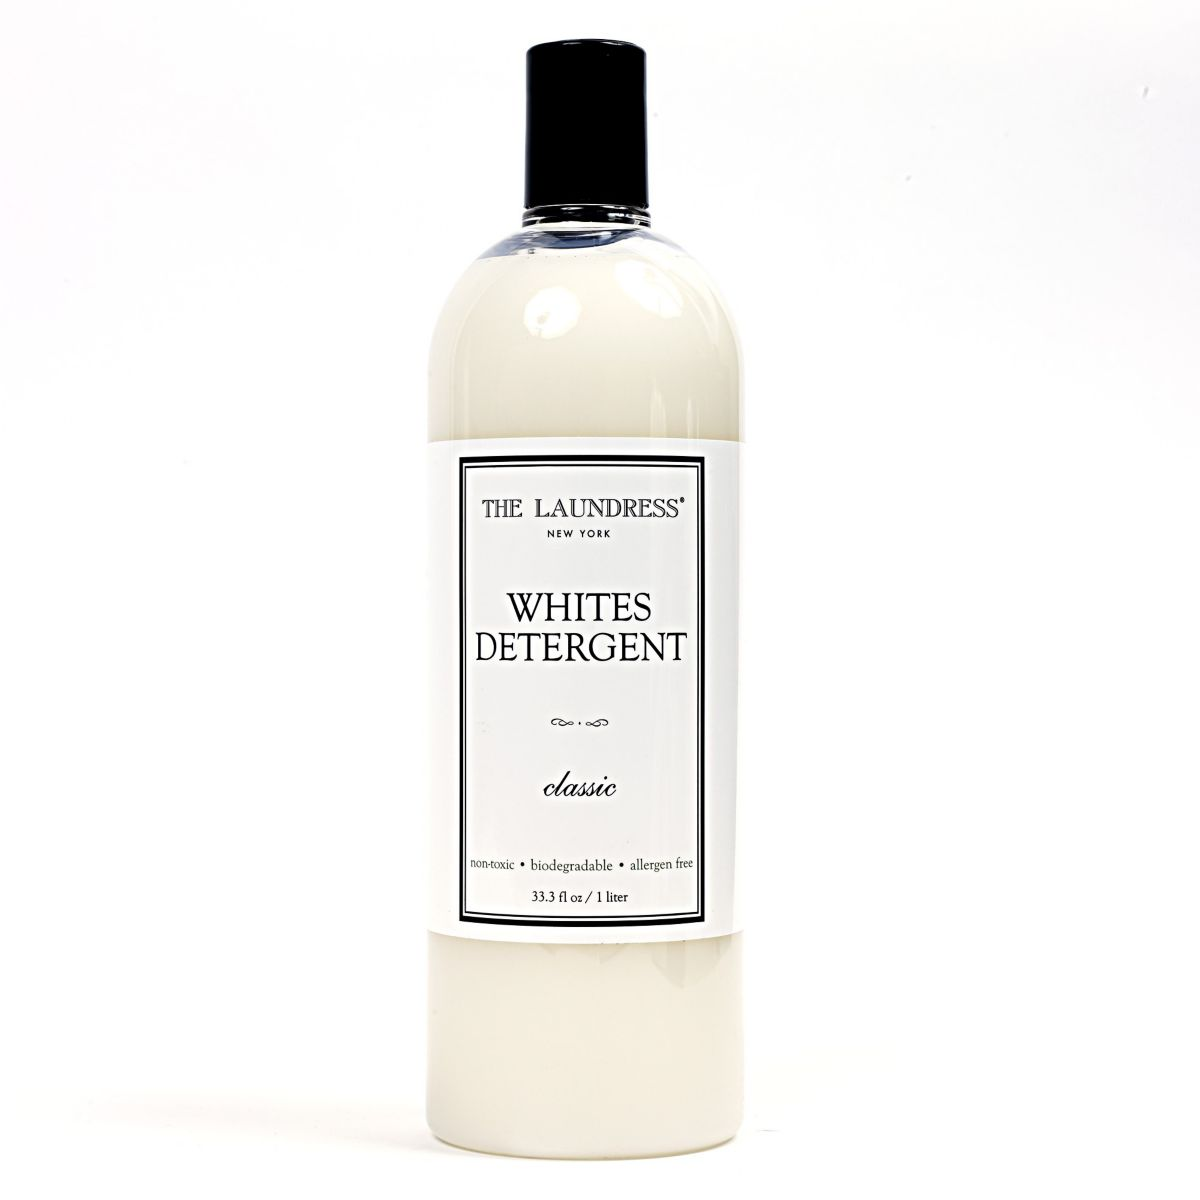 Whites Detergent By The Laundress by The Laundress